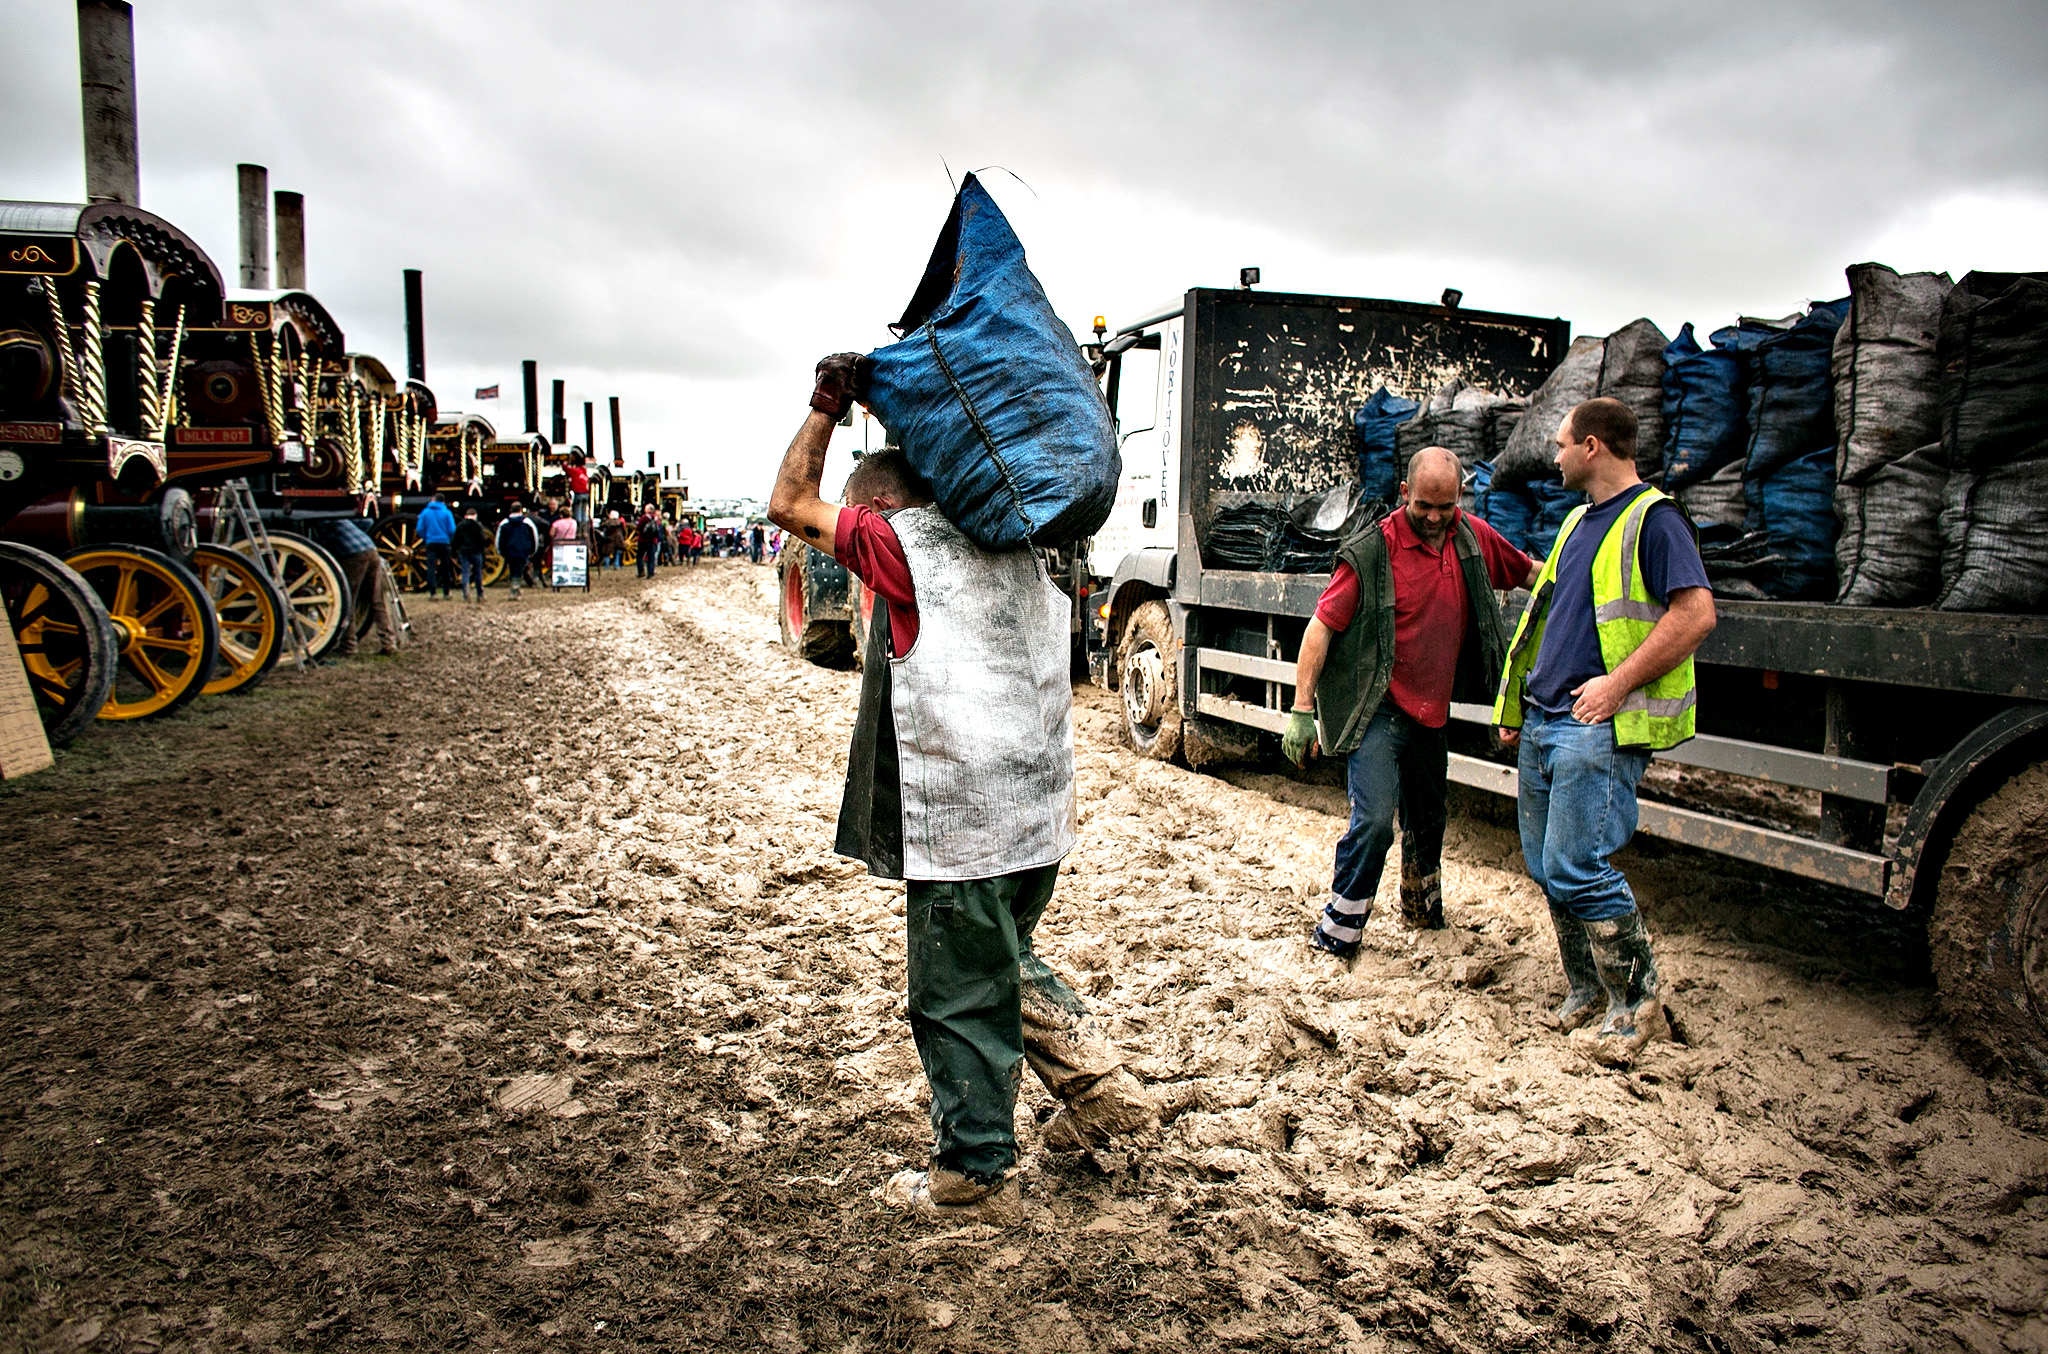 Coal man Simon Bee walks through the mud as he delivers bags of coal to showman's steam engines being prepared for display at the Great Dorset Steam Fair in Tarrant Hinton near Blandford on August 28, 2014 in Dorset, England. Heavy rain has disrupted the opening of the event, which is in its 45th year and regularly attracts 200,000 visitors to the site to see steam road locomotive, as well as other vintage vehicles.